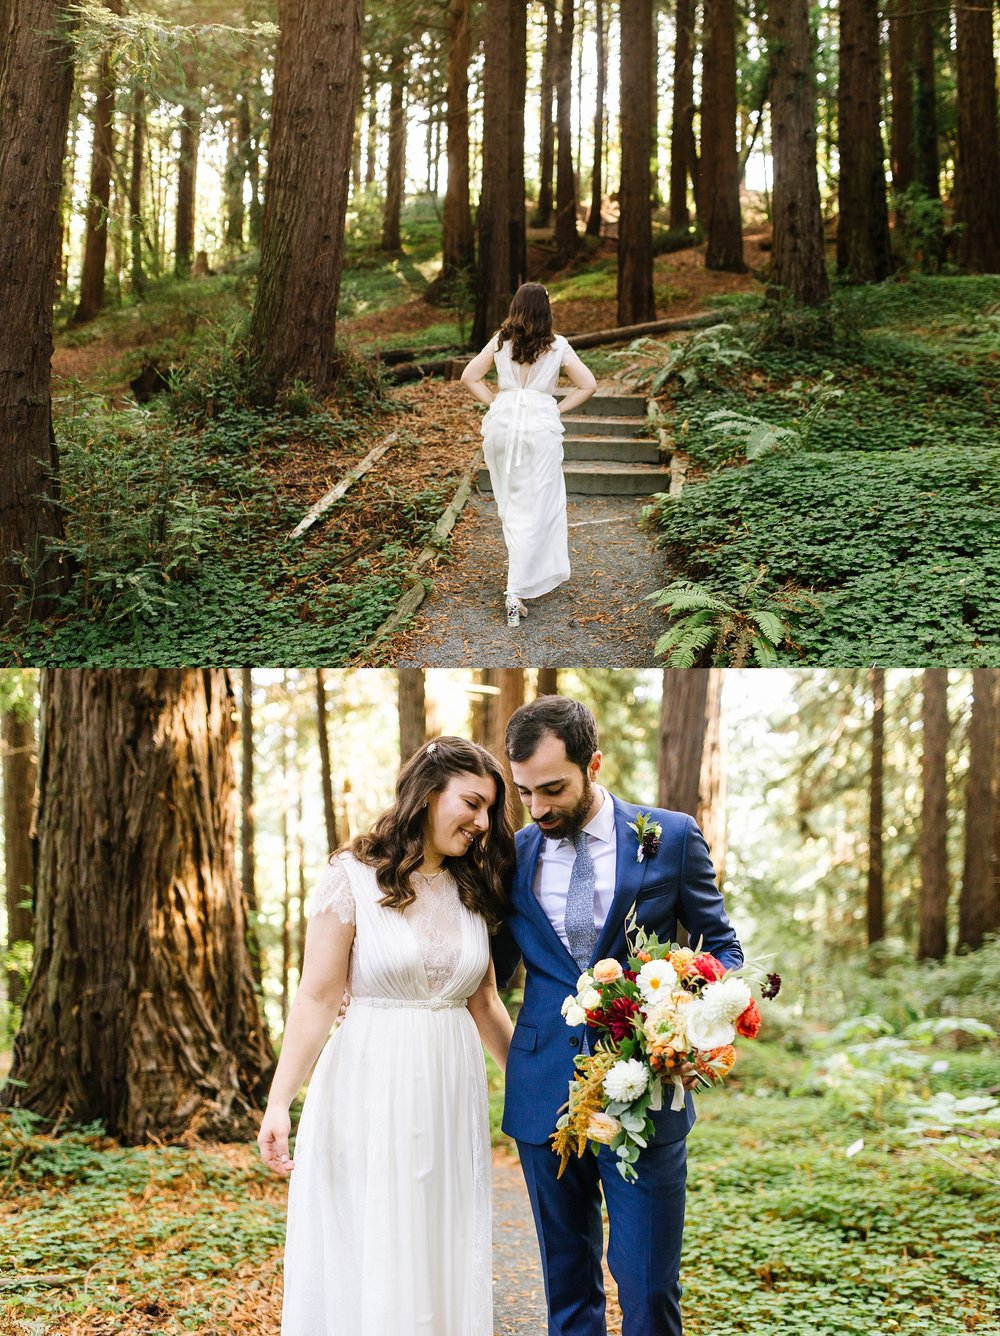 noahhannah_redwoods_botanical_wedding_berkeley_cdp_0019.jpg